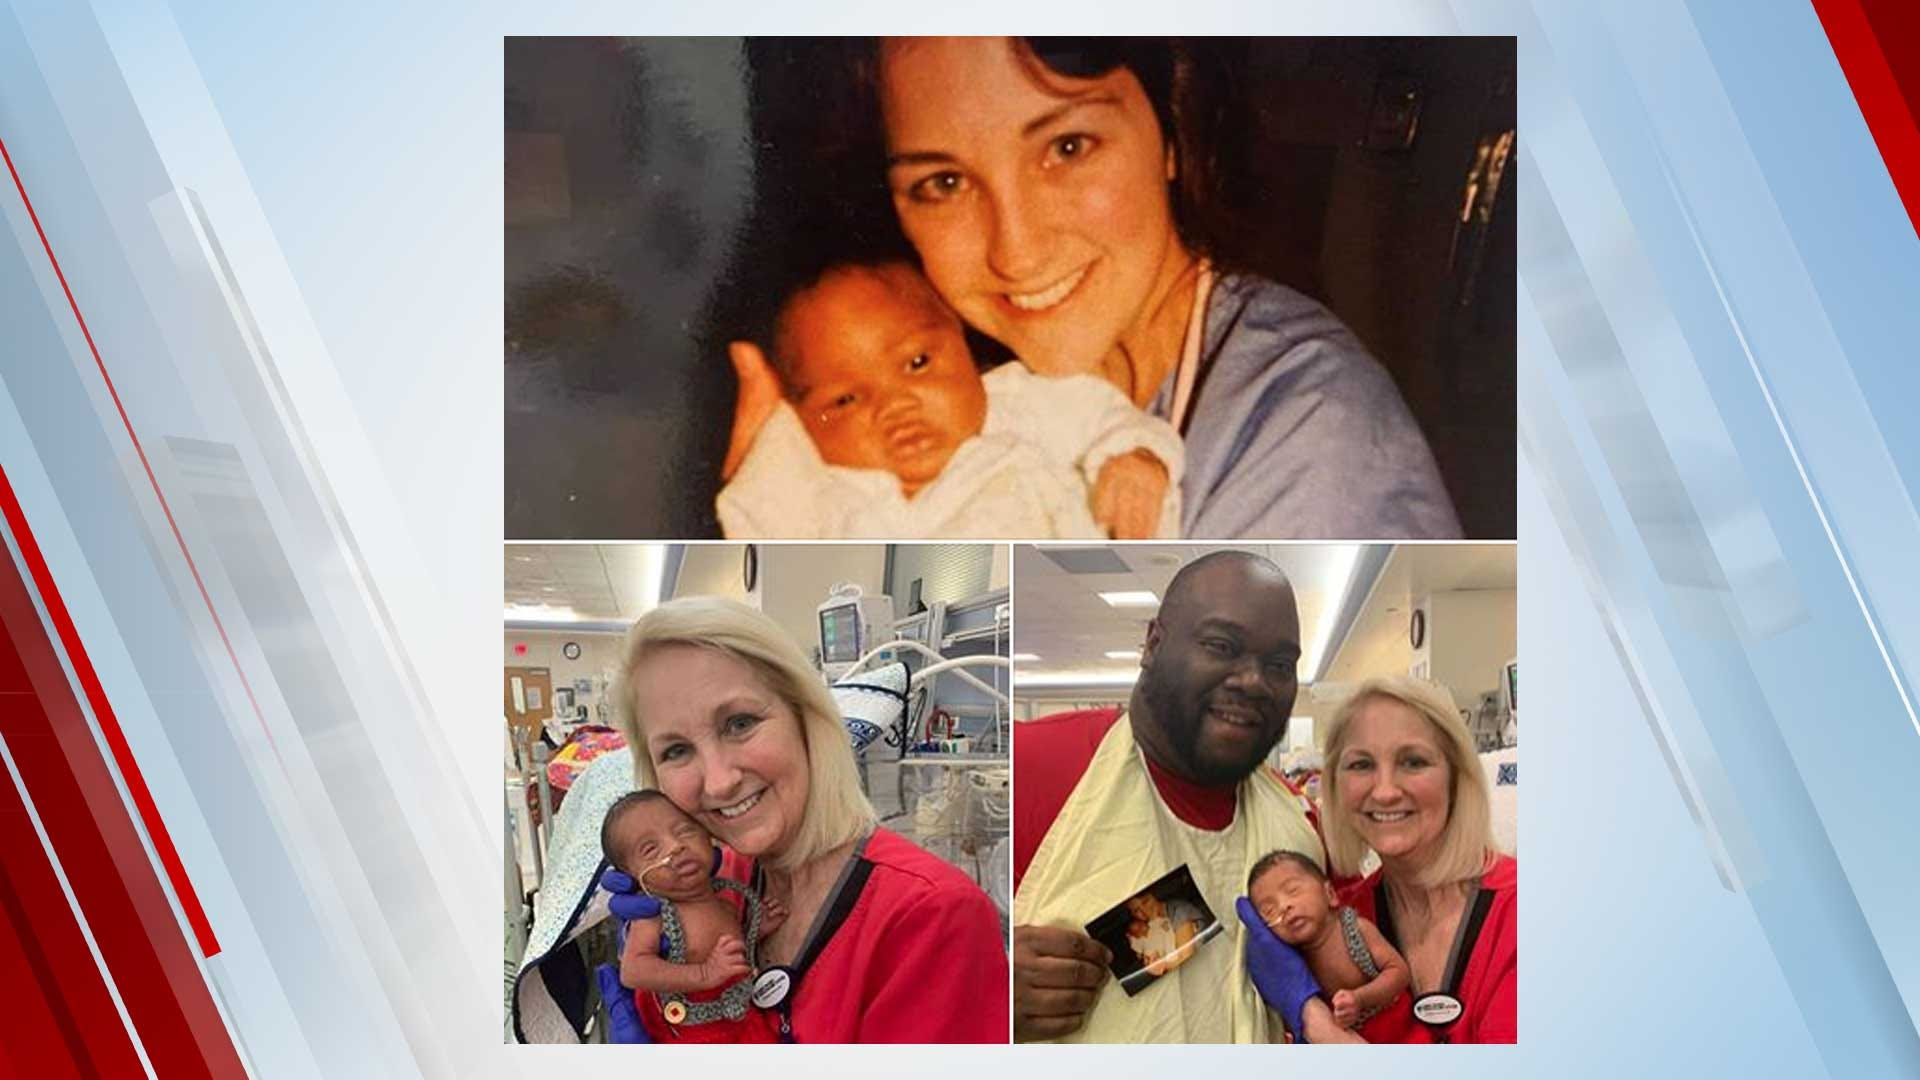 NICU Nurse Takes Care Of Father, Baby 34 Years Apart